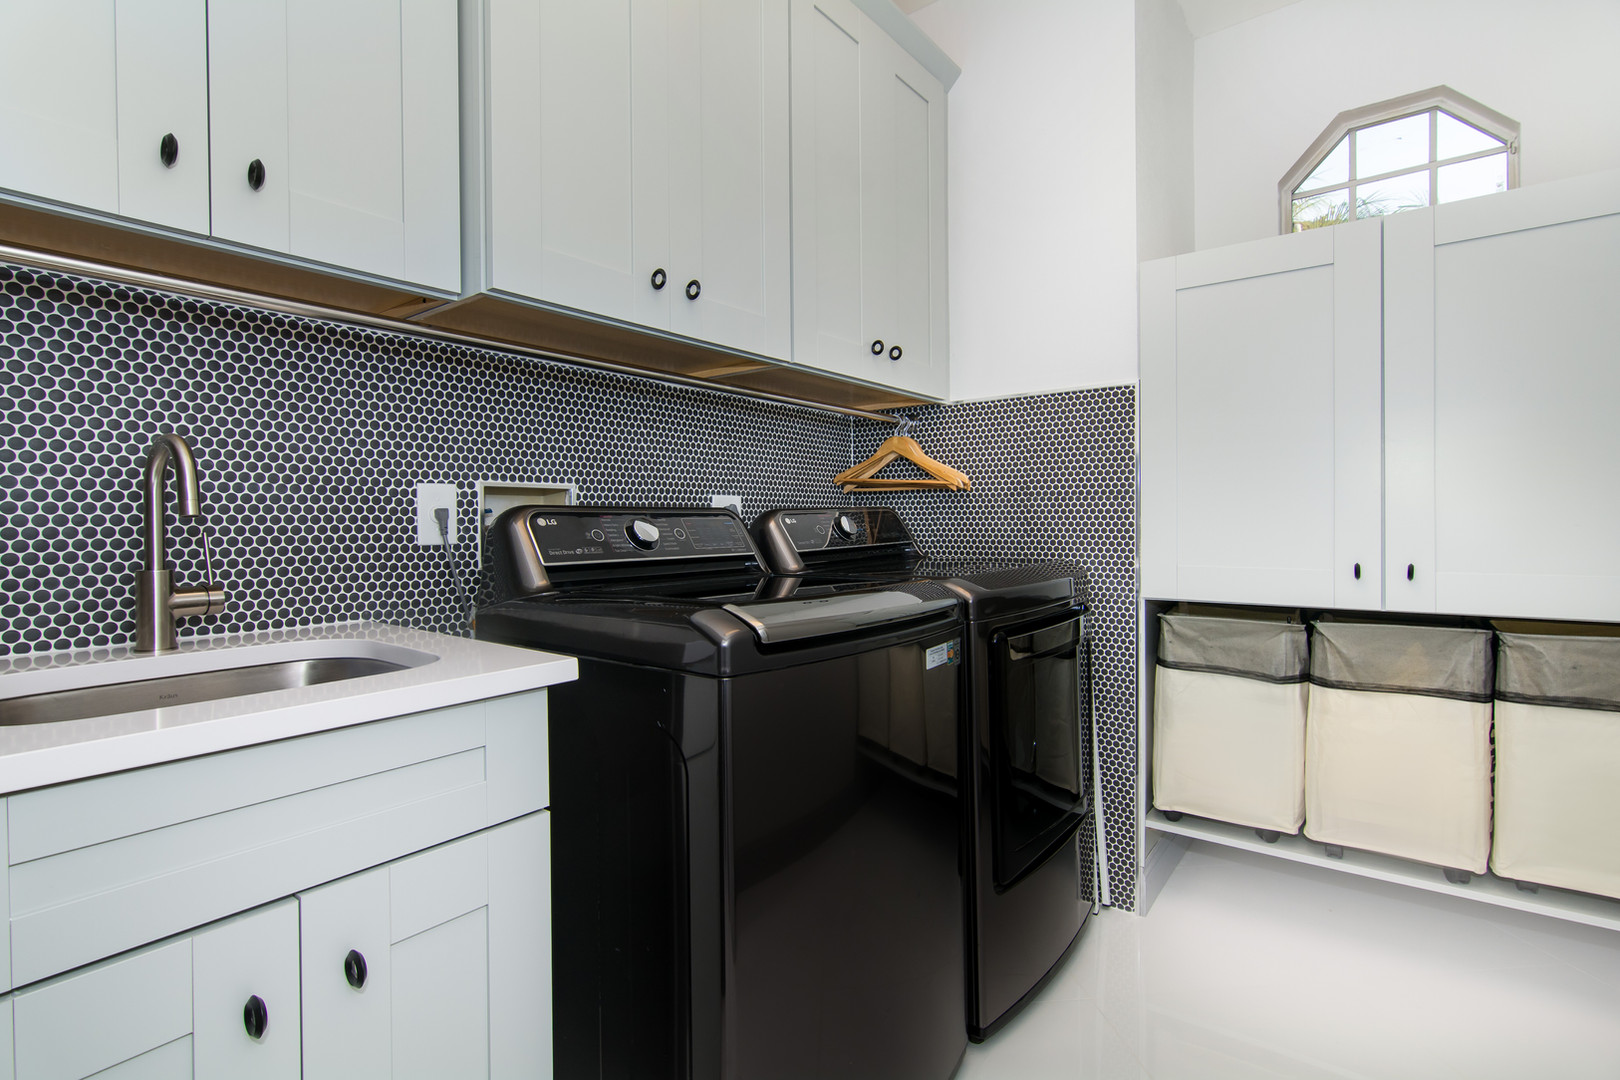 Gray laundry room cabinets with black matte penny tile